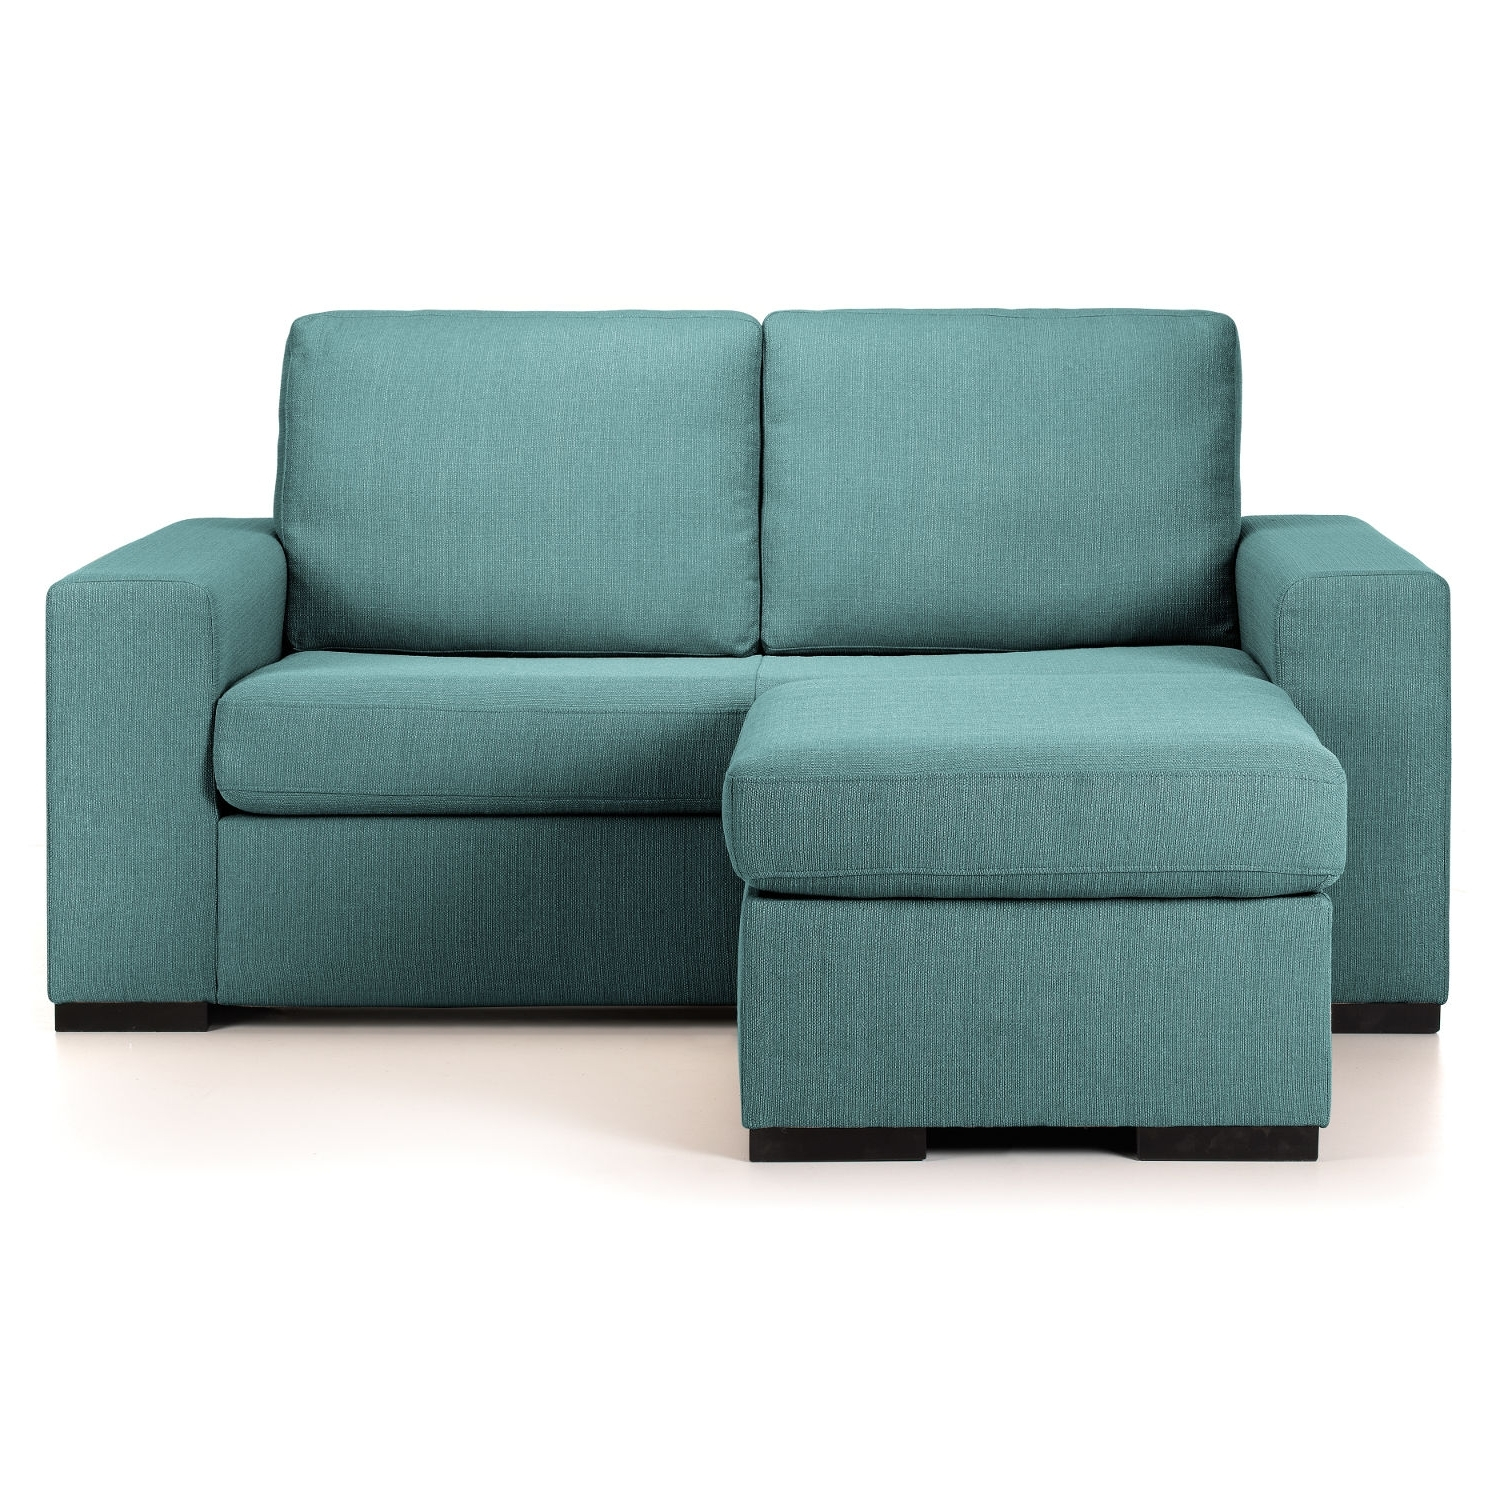 Well Liked Chaise Sofa Beds Inside Frances 4 In 1 Corner Chaise Sofa Bed With Storage Footstool (View 13 of 15)